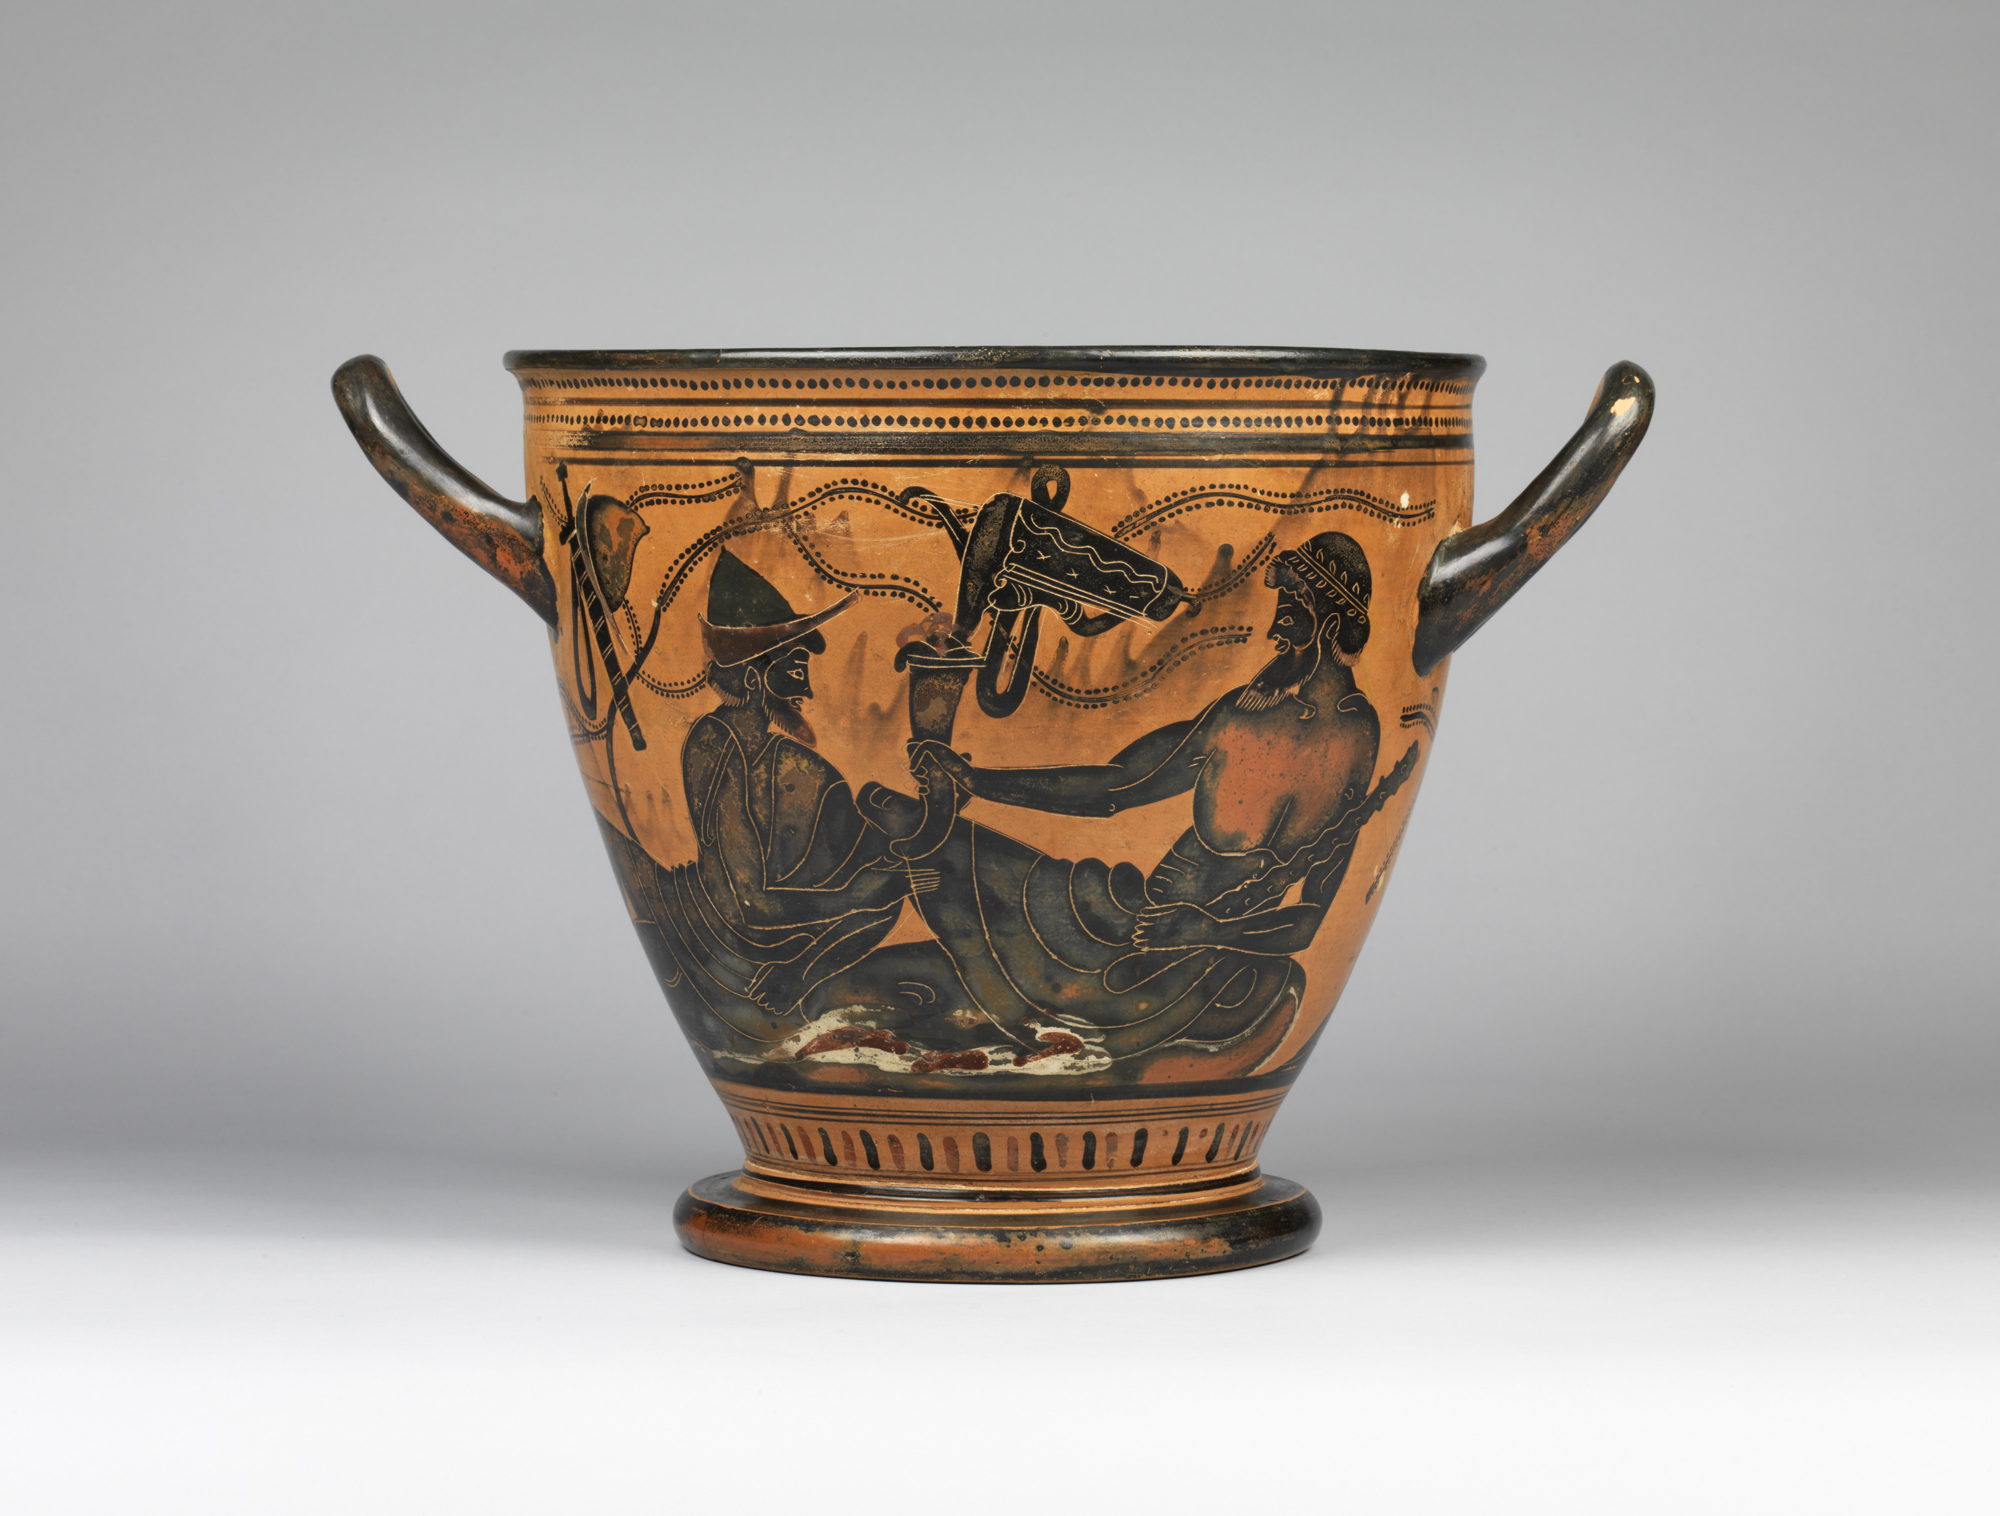 Greek, Attic, attributed to the Theseus Painter, ca. 490 b.c.: Black-figure skyphos: symposium